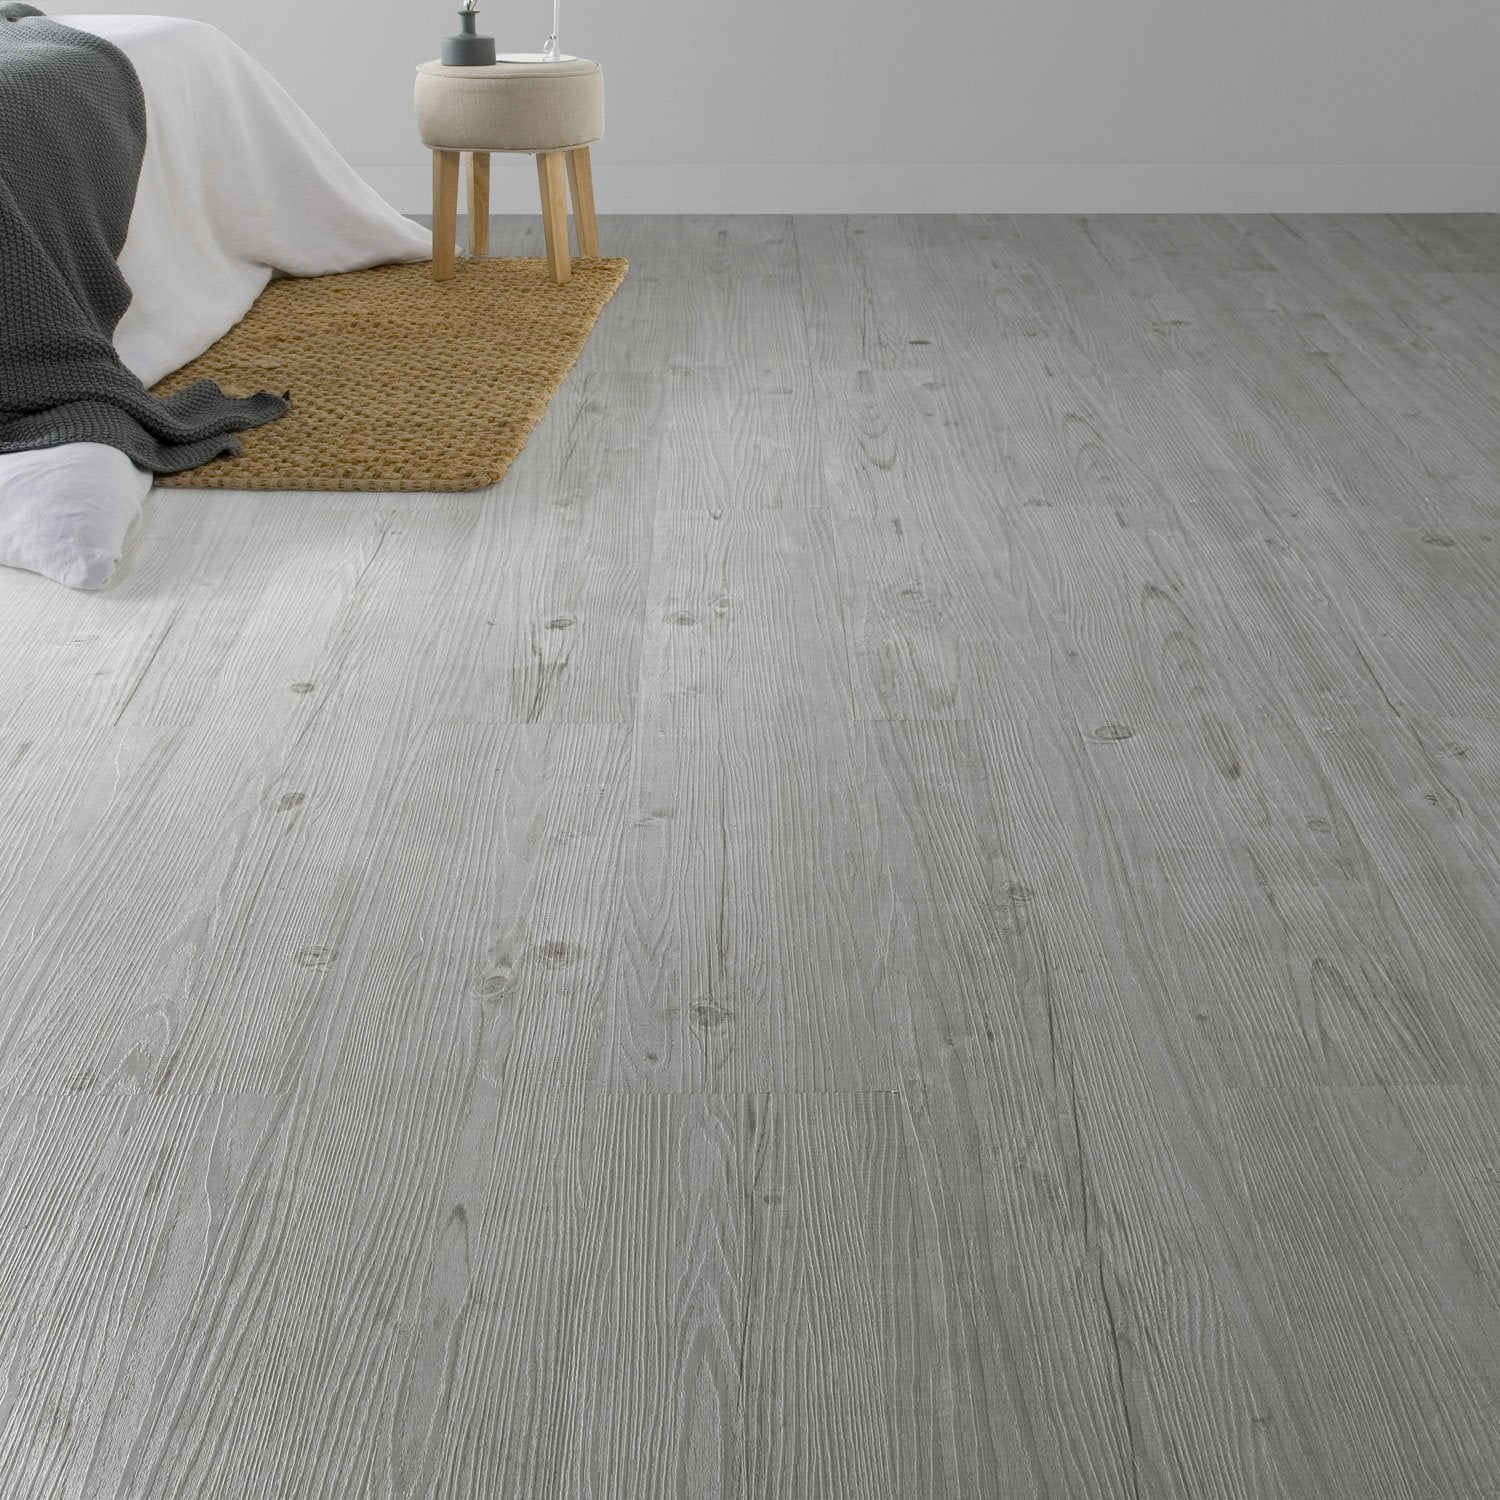 Lame pvc adh sive gris grey aero soft styling leroy merlin for Pose dalle pvc adhesive sur carrelage